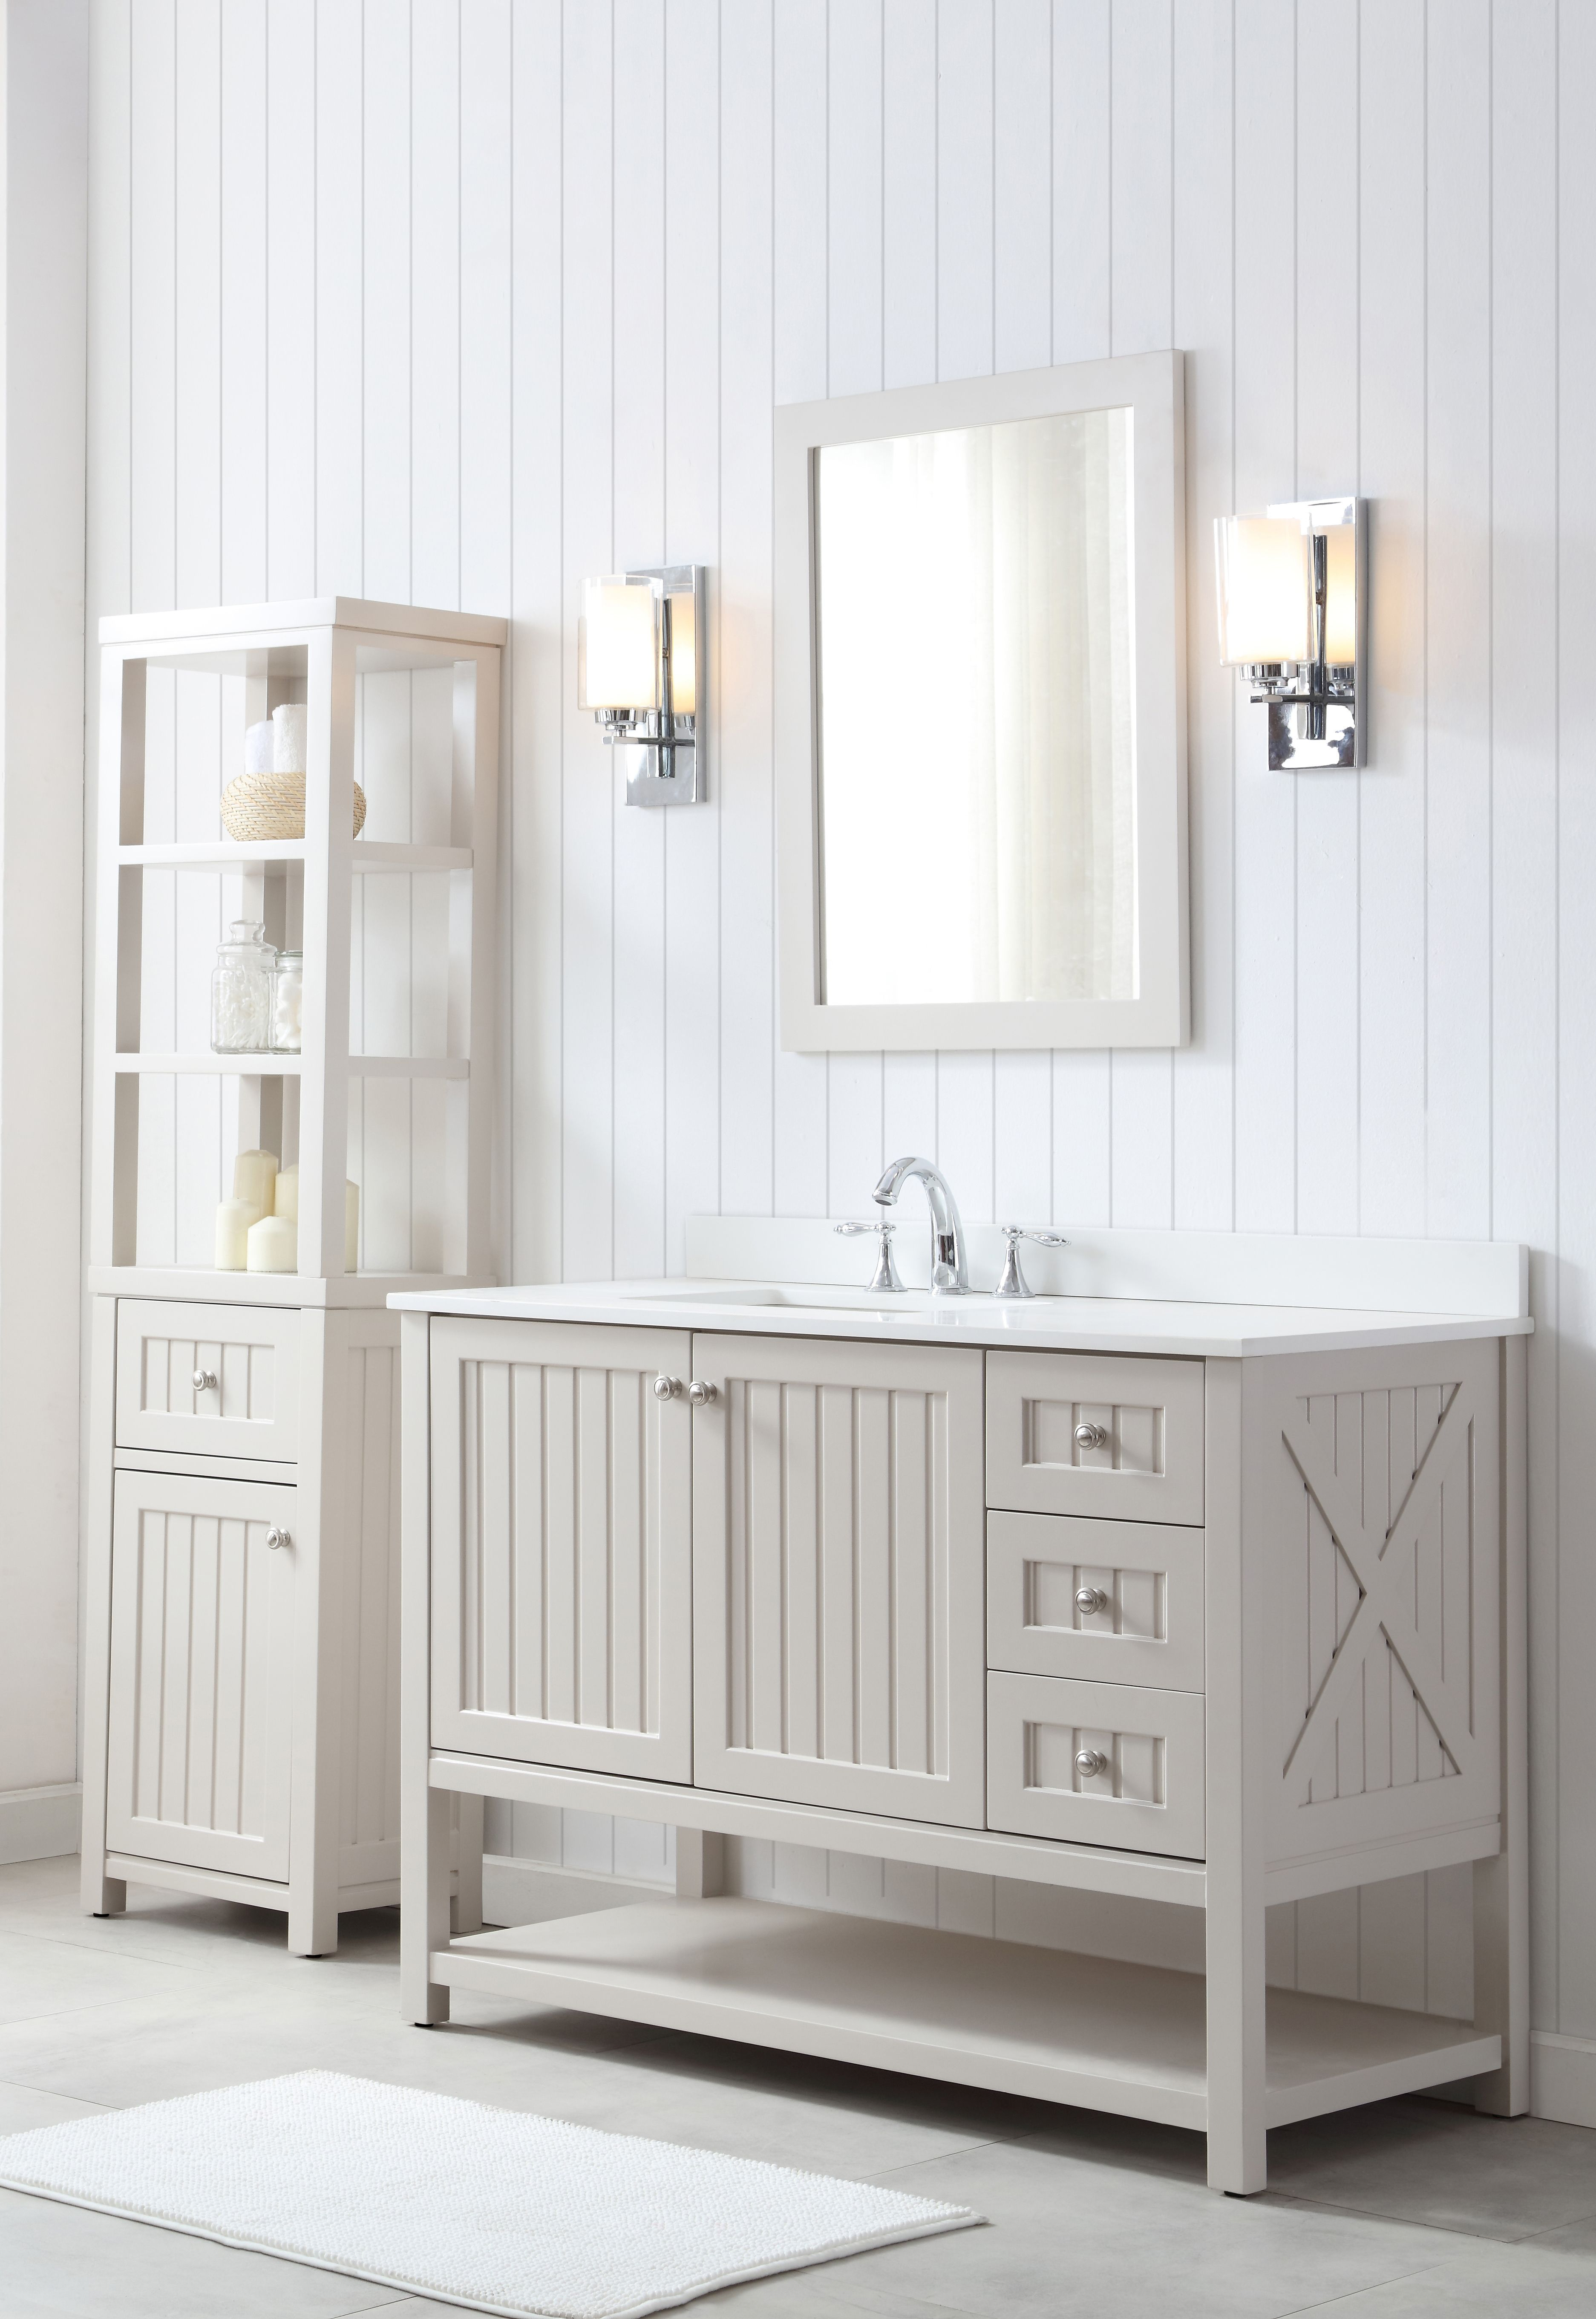 Martha Stewart Bathroom Vanity | Add A Touch Of Charmng New England To Your Bathroom With Our All